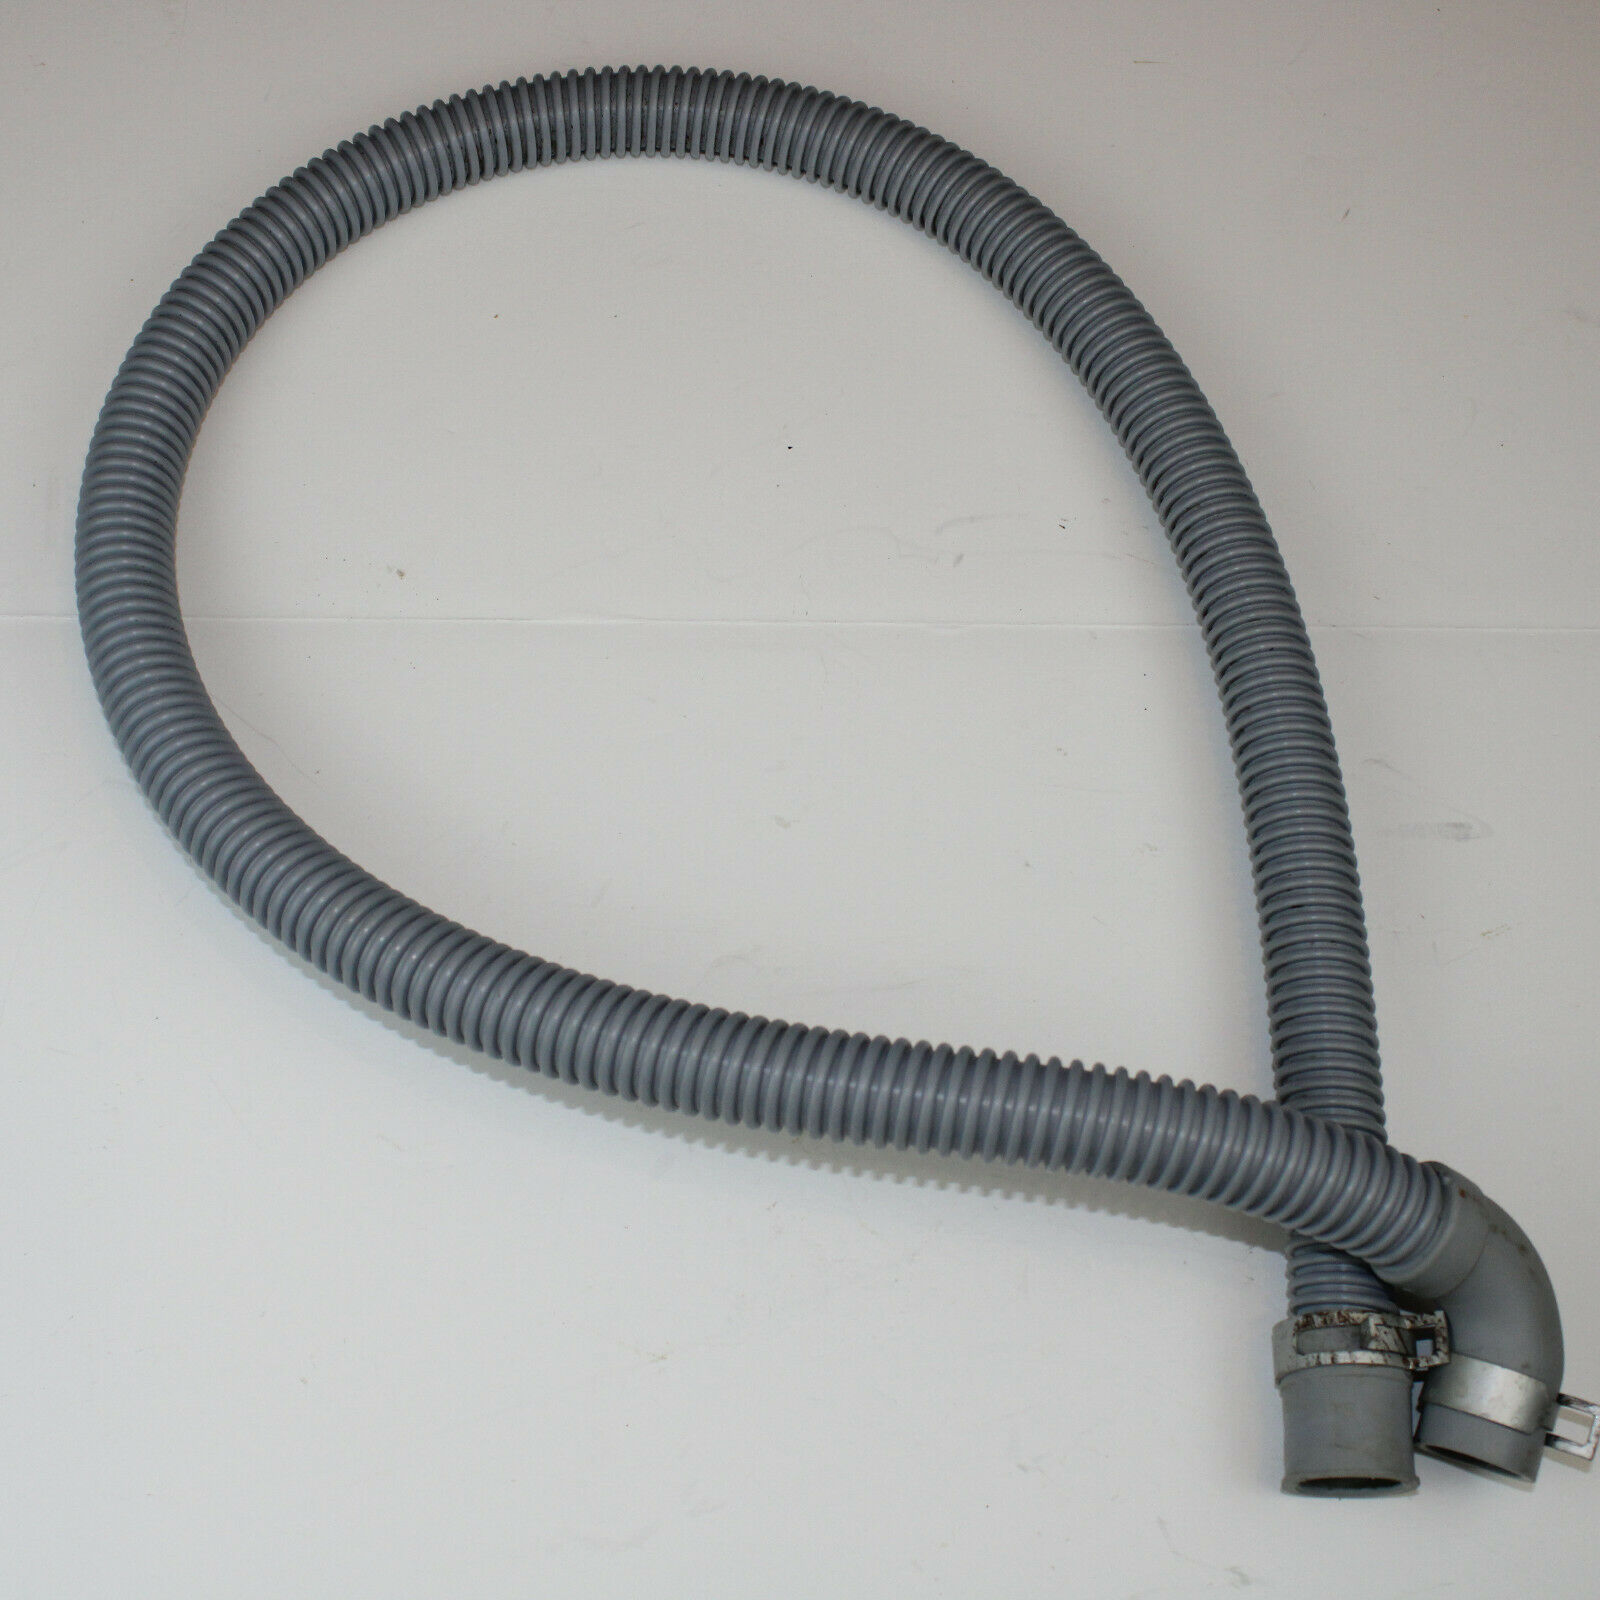 Primary image for LG Washer : Drain Hose w/Elbow (5214FR3188H / 5214FR3188K) {P4846}